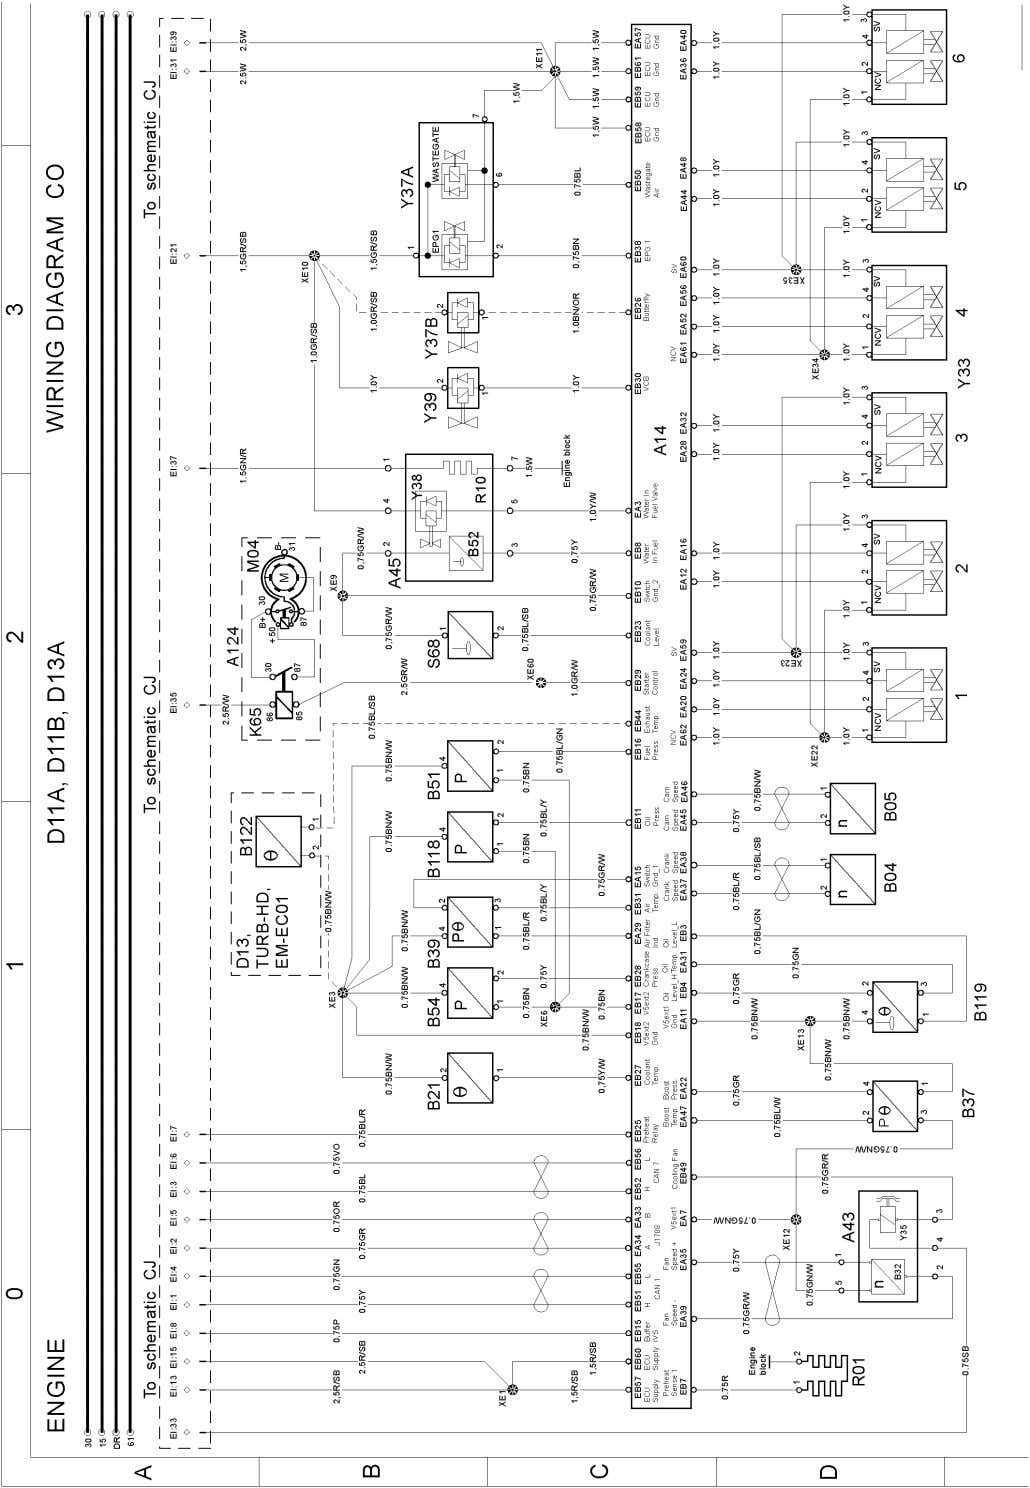 T3057378 Page 22 (298) Wiring diagram